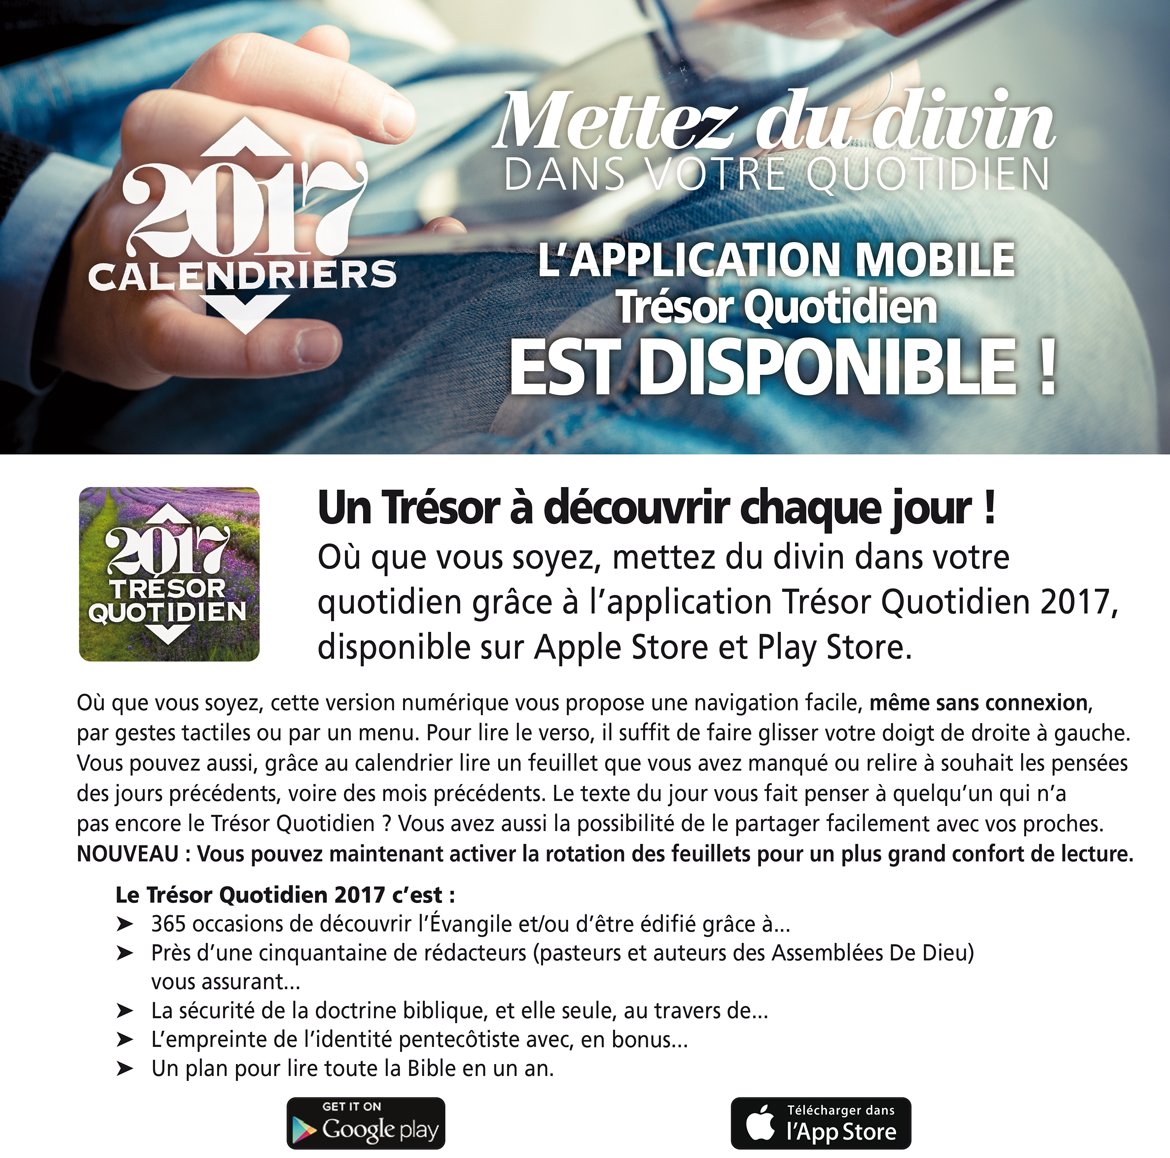 Application Trésor Quotidien